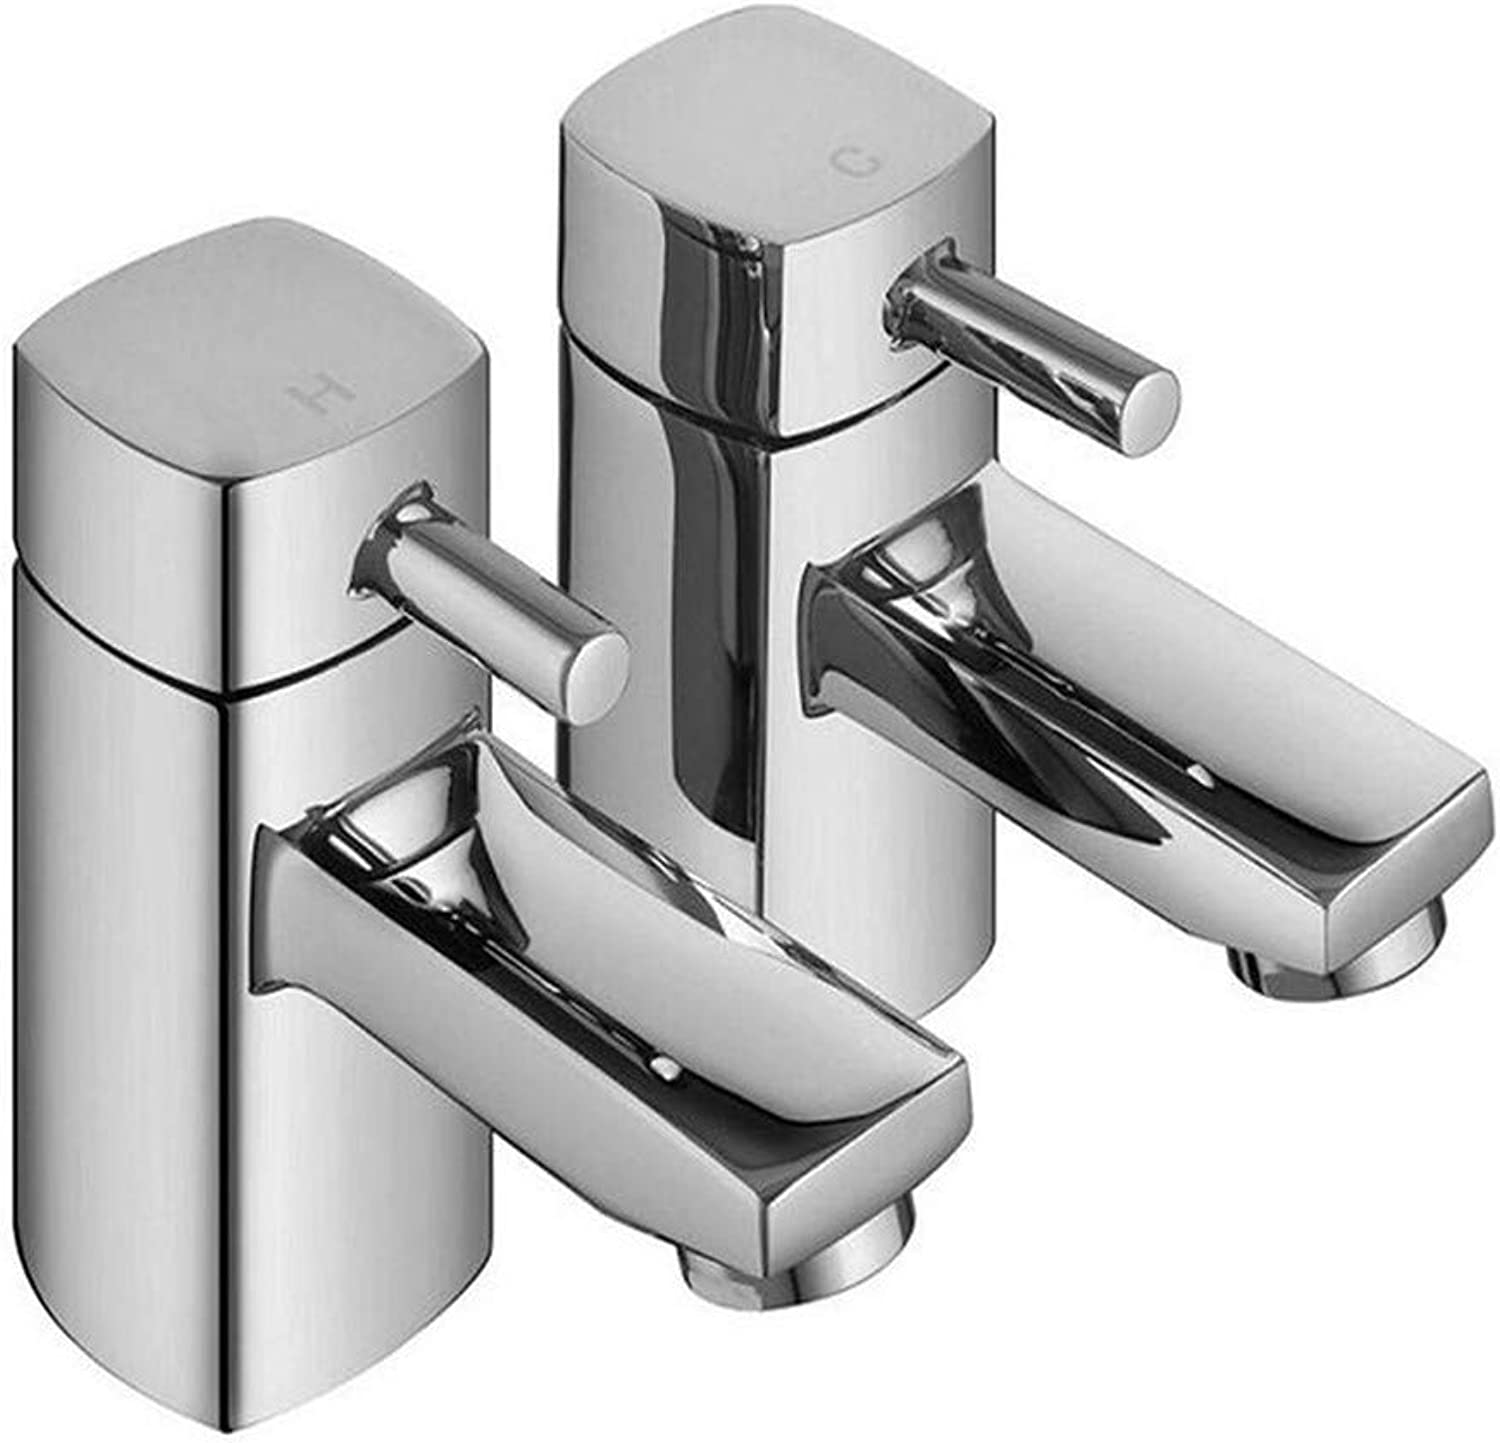 Retro Kitchen Hot and Cold Water 360 Degree redation Hot and Cold Twin Basin Taps Square Designer Brass New Chrome Cloakroom